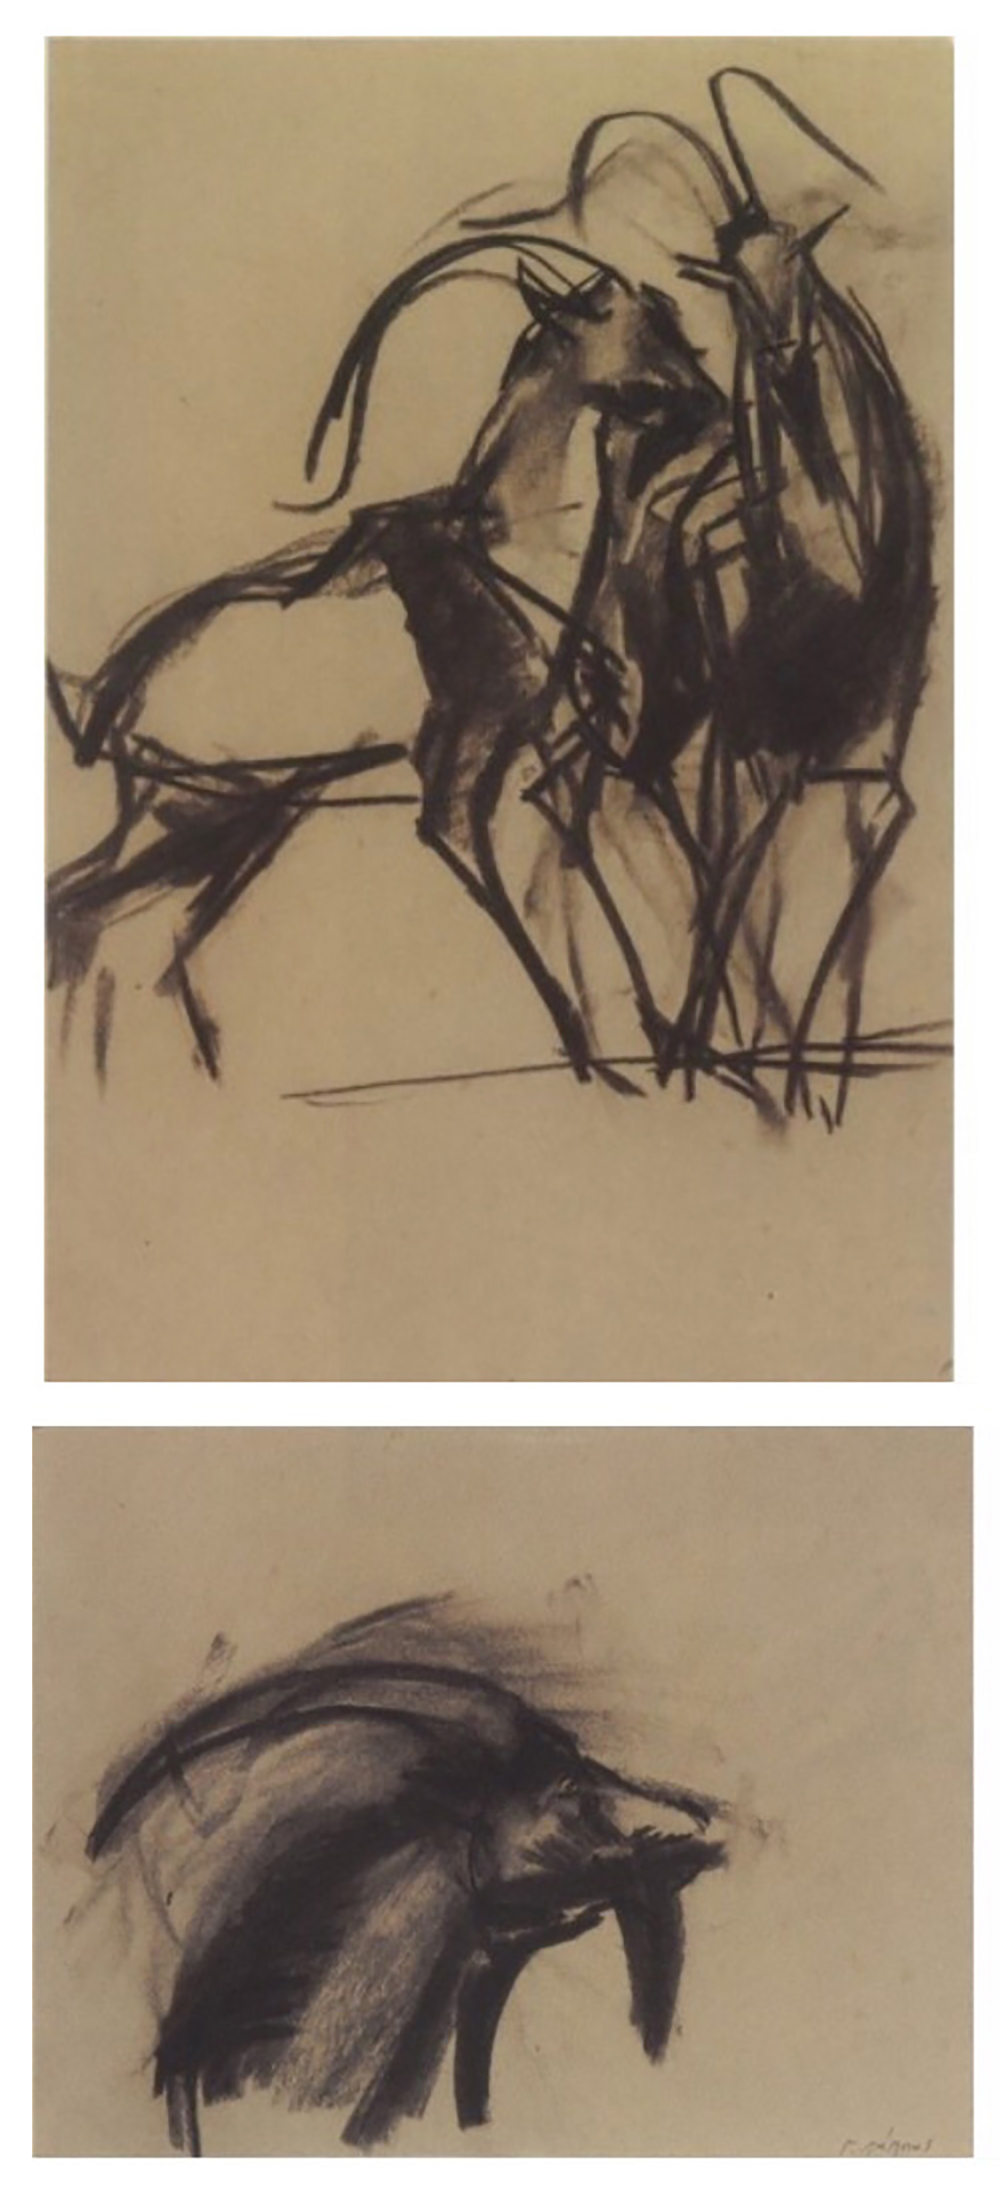 George Lappas (Greek, 1950-2016) (AR), 2 drawings in a frame, charcoal on paper